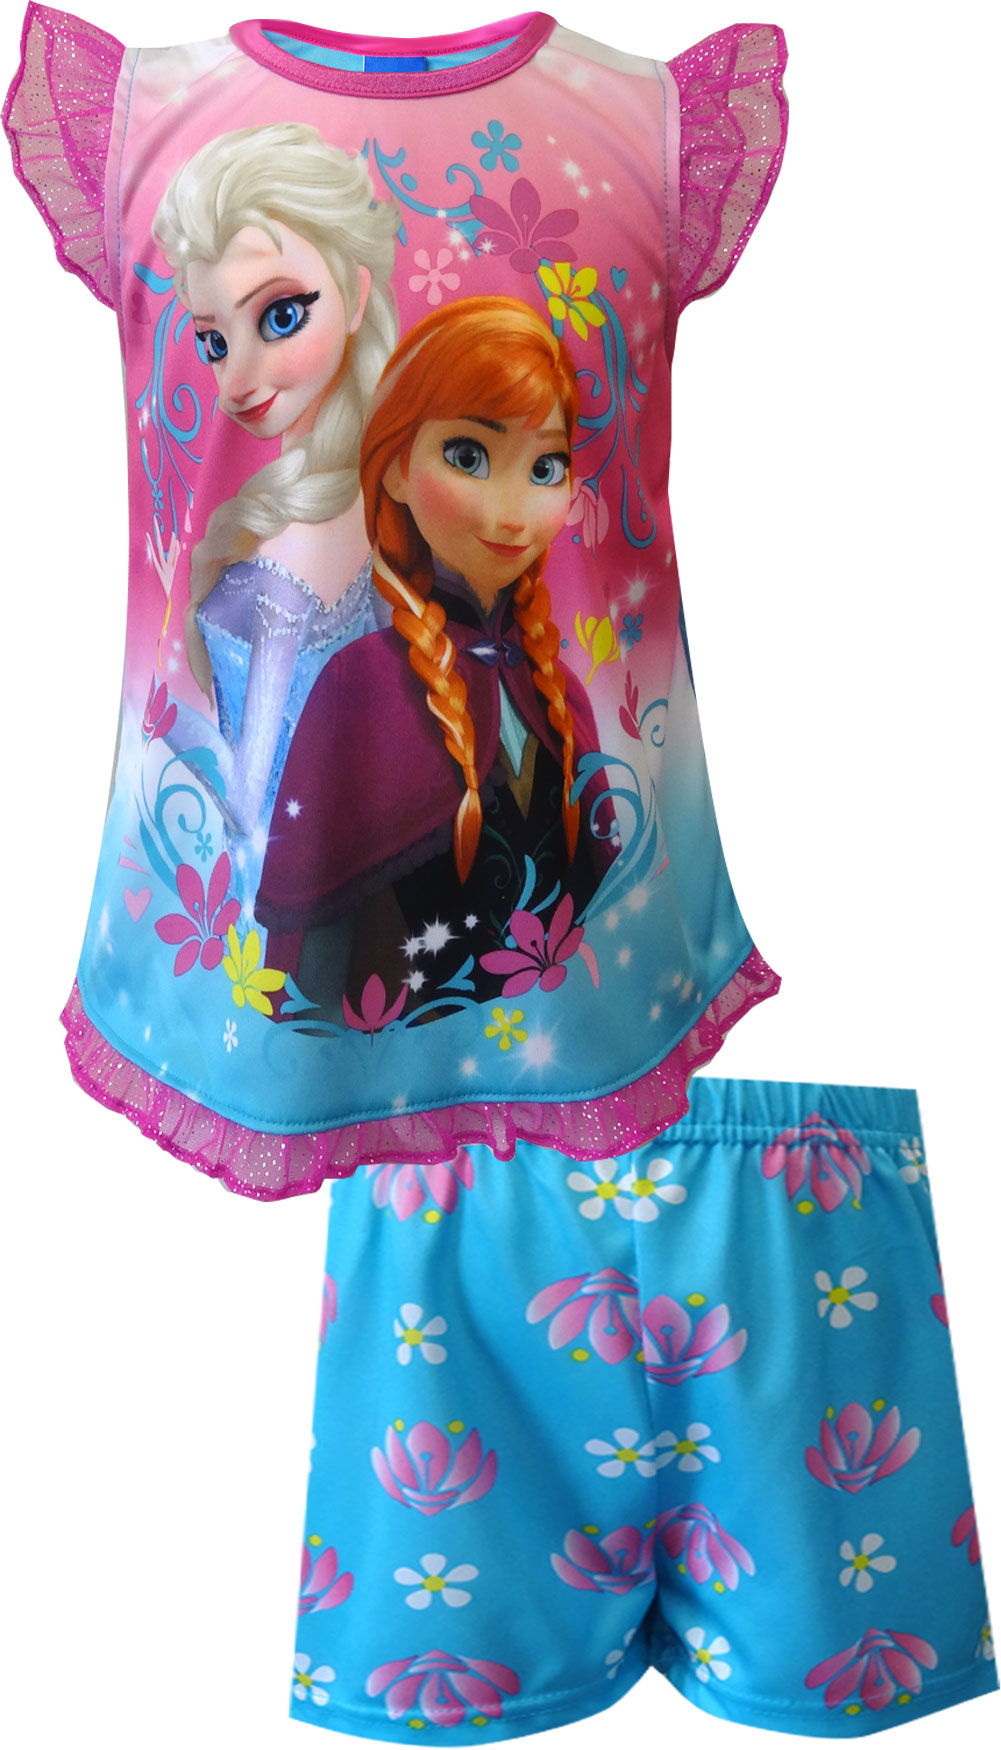 Image of Disney Frozen Princesses Elsa and Anna Toddler Shortie Pajama for girls